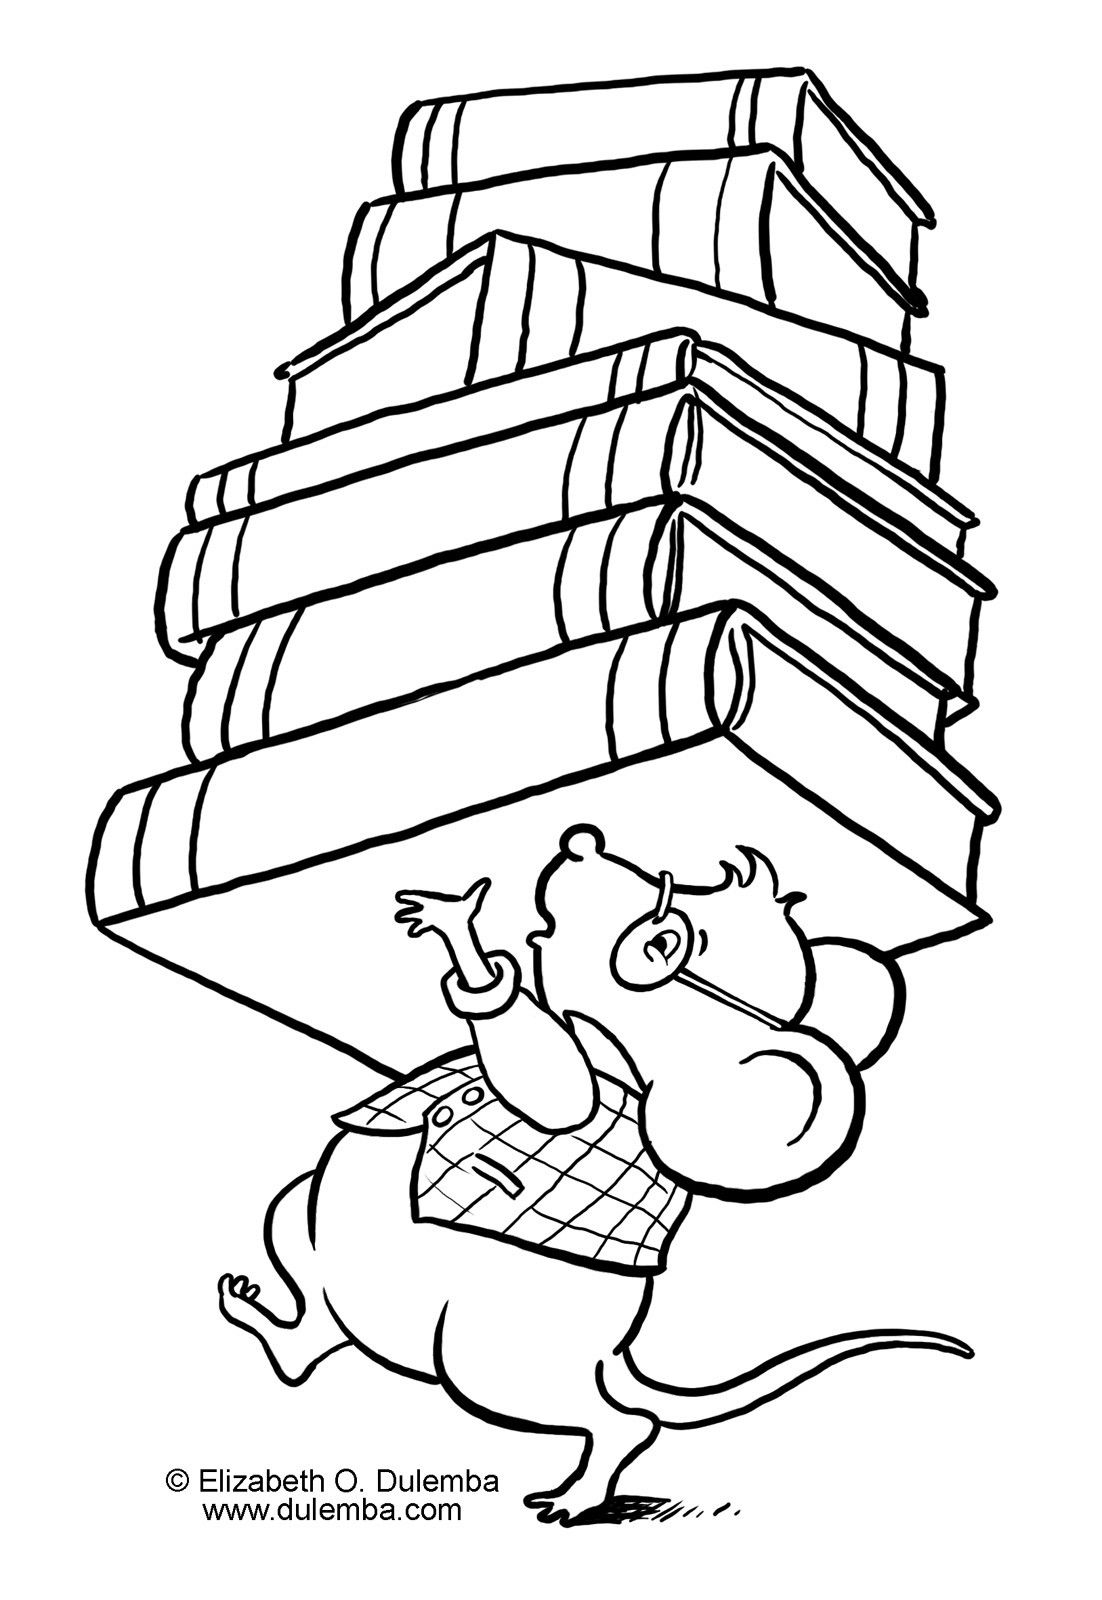 Free coloring pages for reading - Dulemba Coloring Page Tuesday Library Mouse Reading Colouring Pages